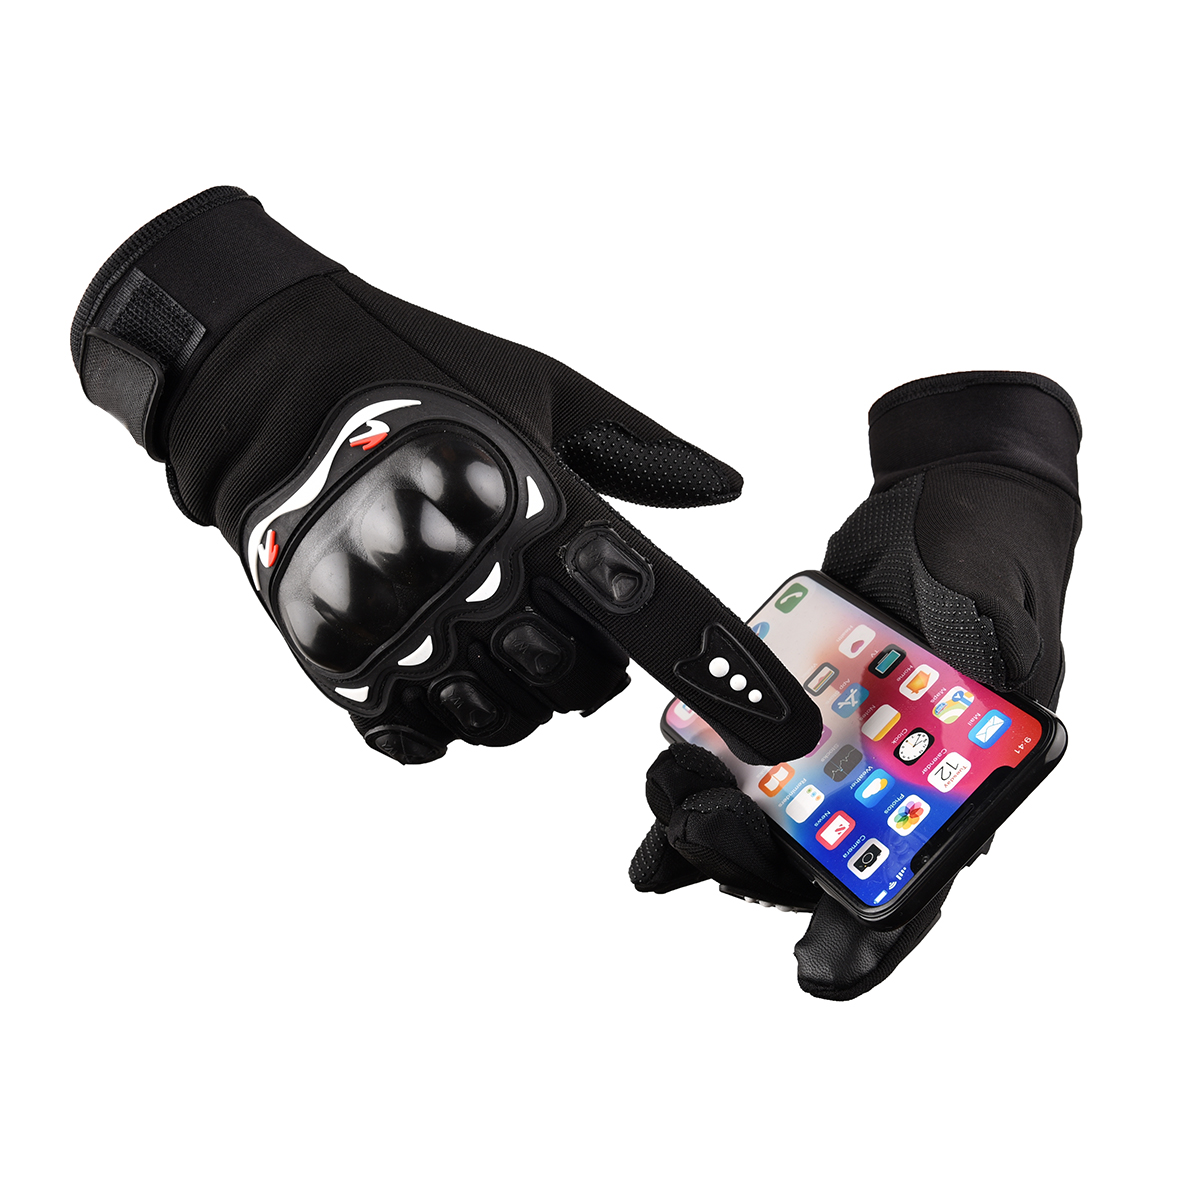 Touch-screen Outdoor Sport Handschuhe Drop Widerstand Handschuhe Winddicht Coldproof <font><b>Winter</b></font> Radfahren Klettern Skifahren Motorrad Handschuhe image